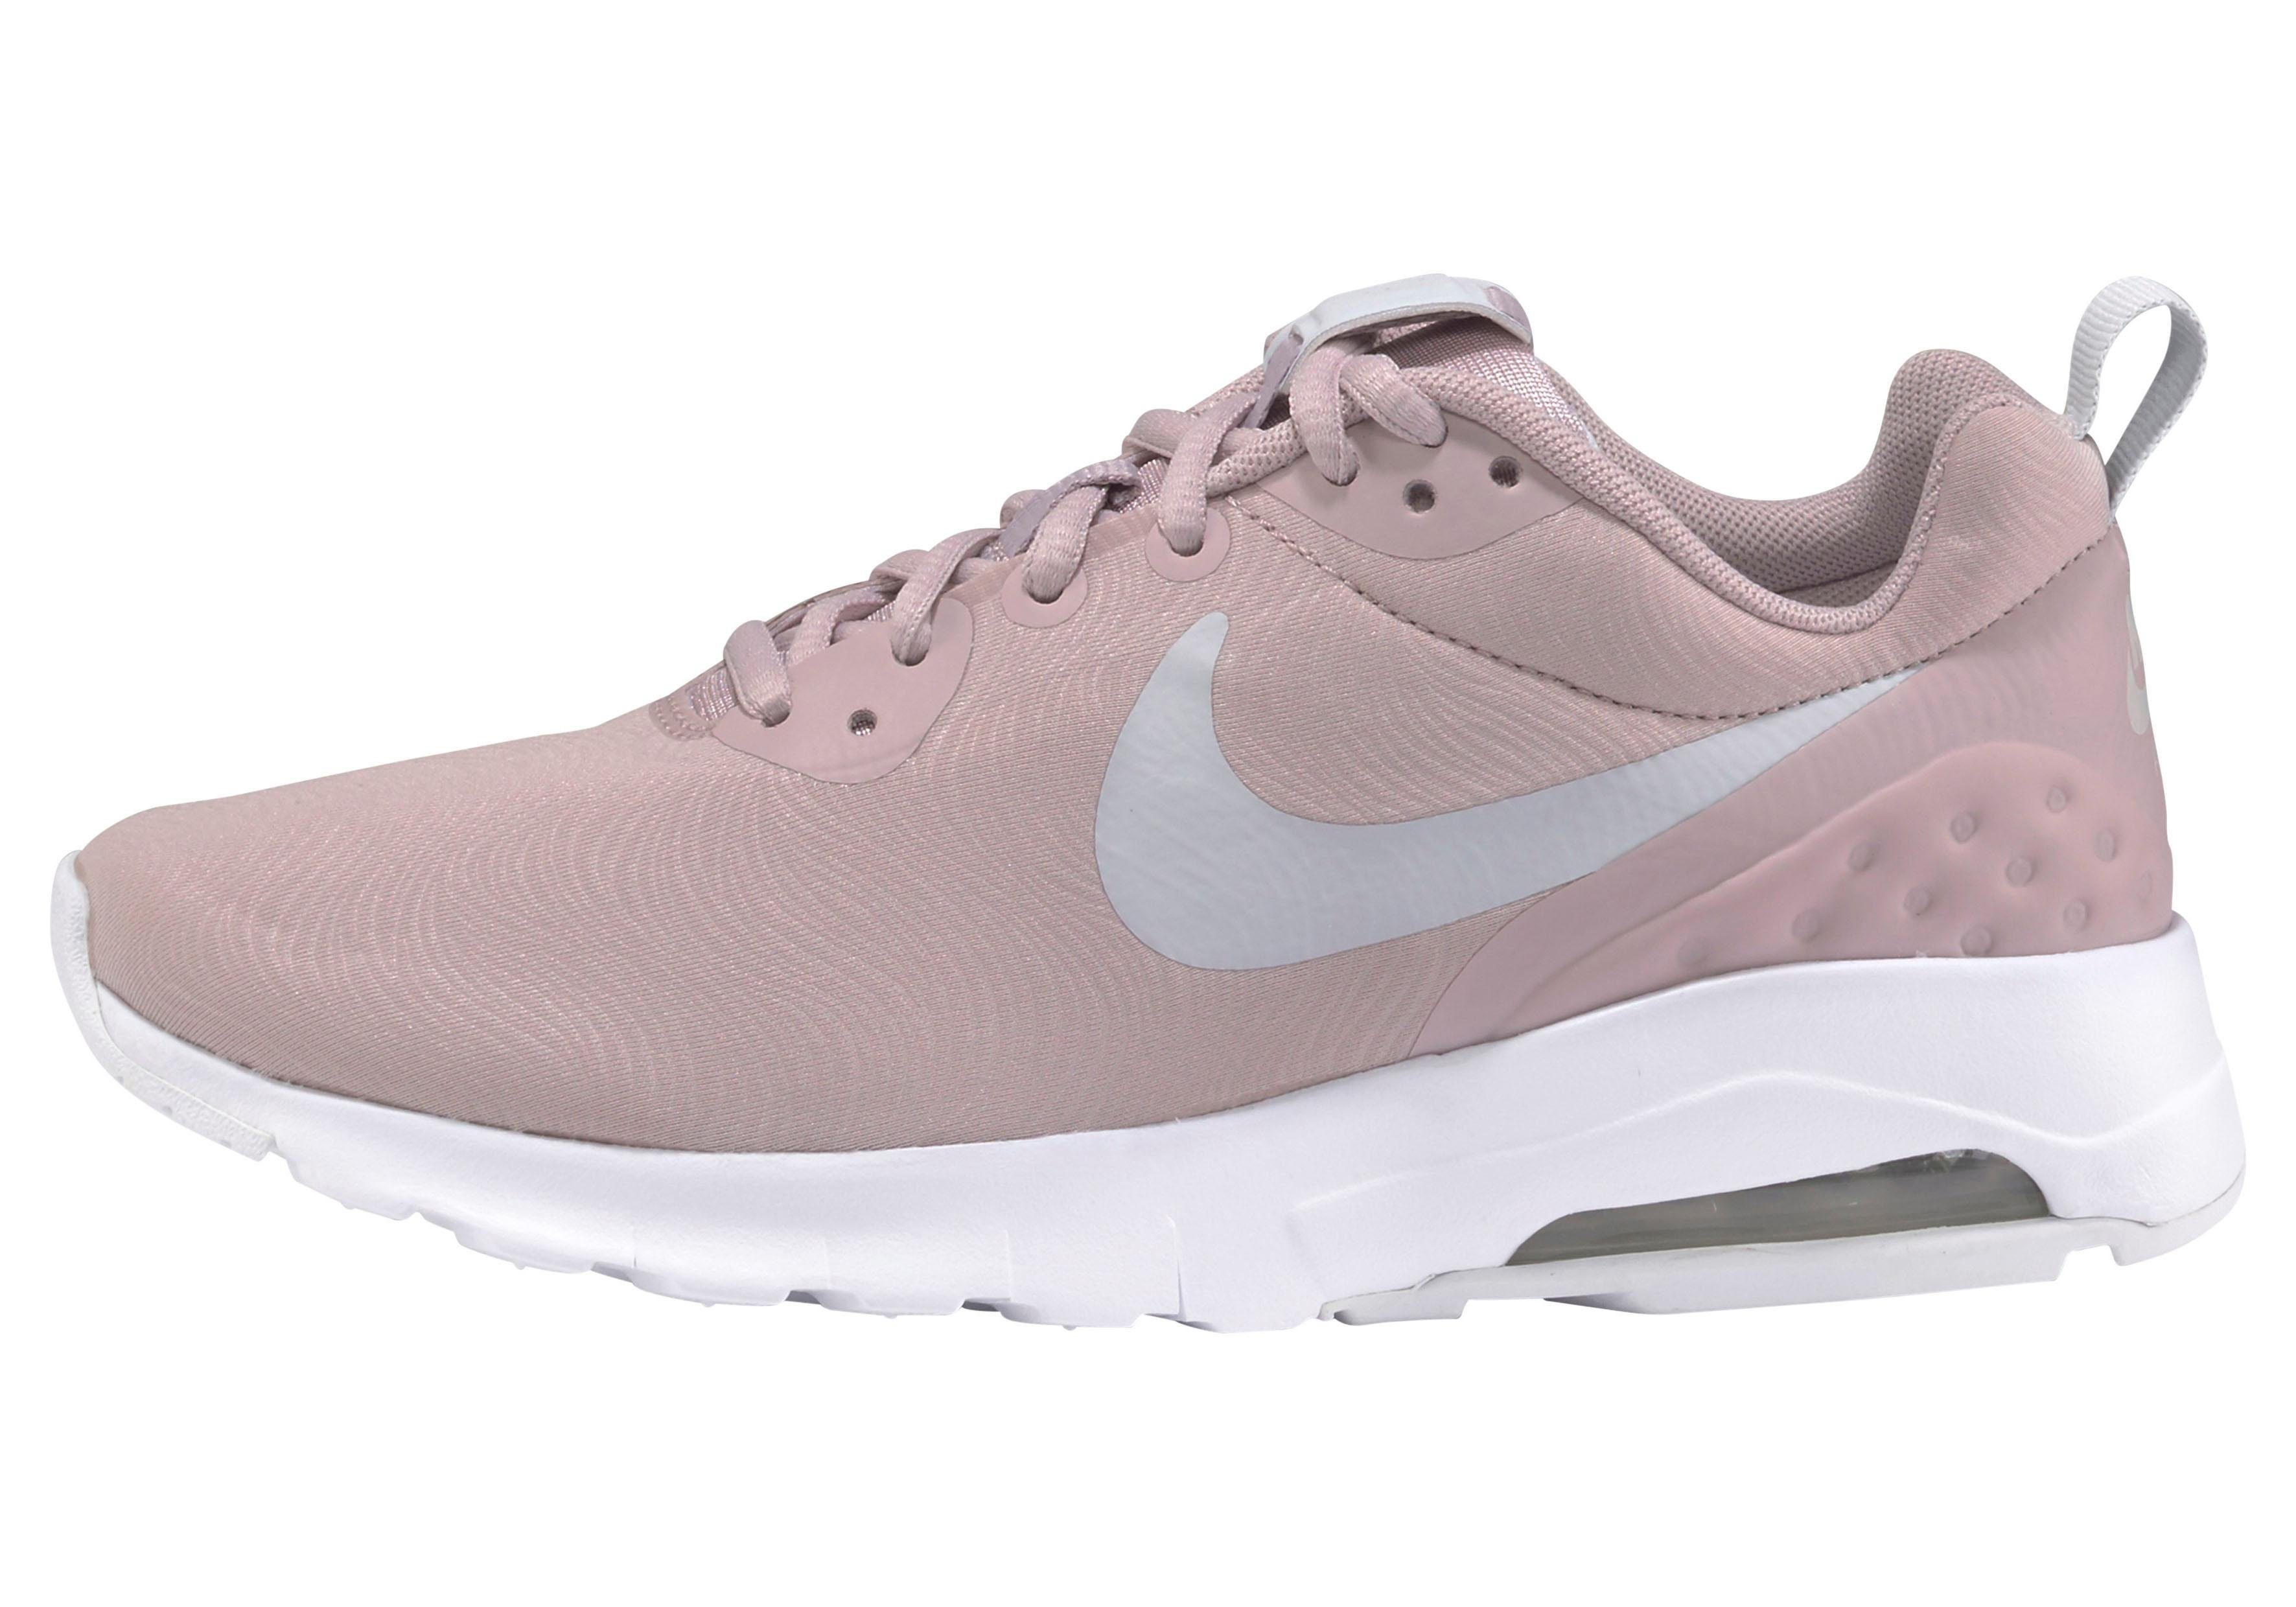 Roze Nike Sneakers Mouvement Air Max Lw Soi DncrHNnSA